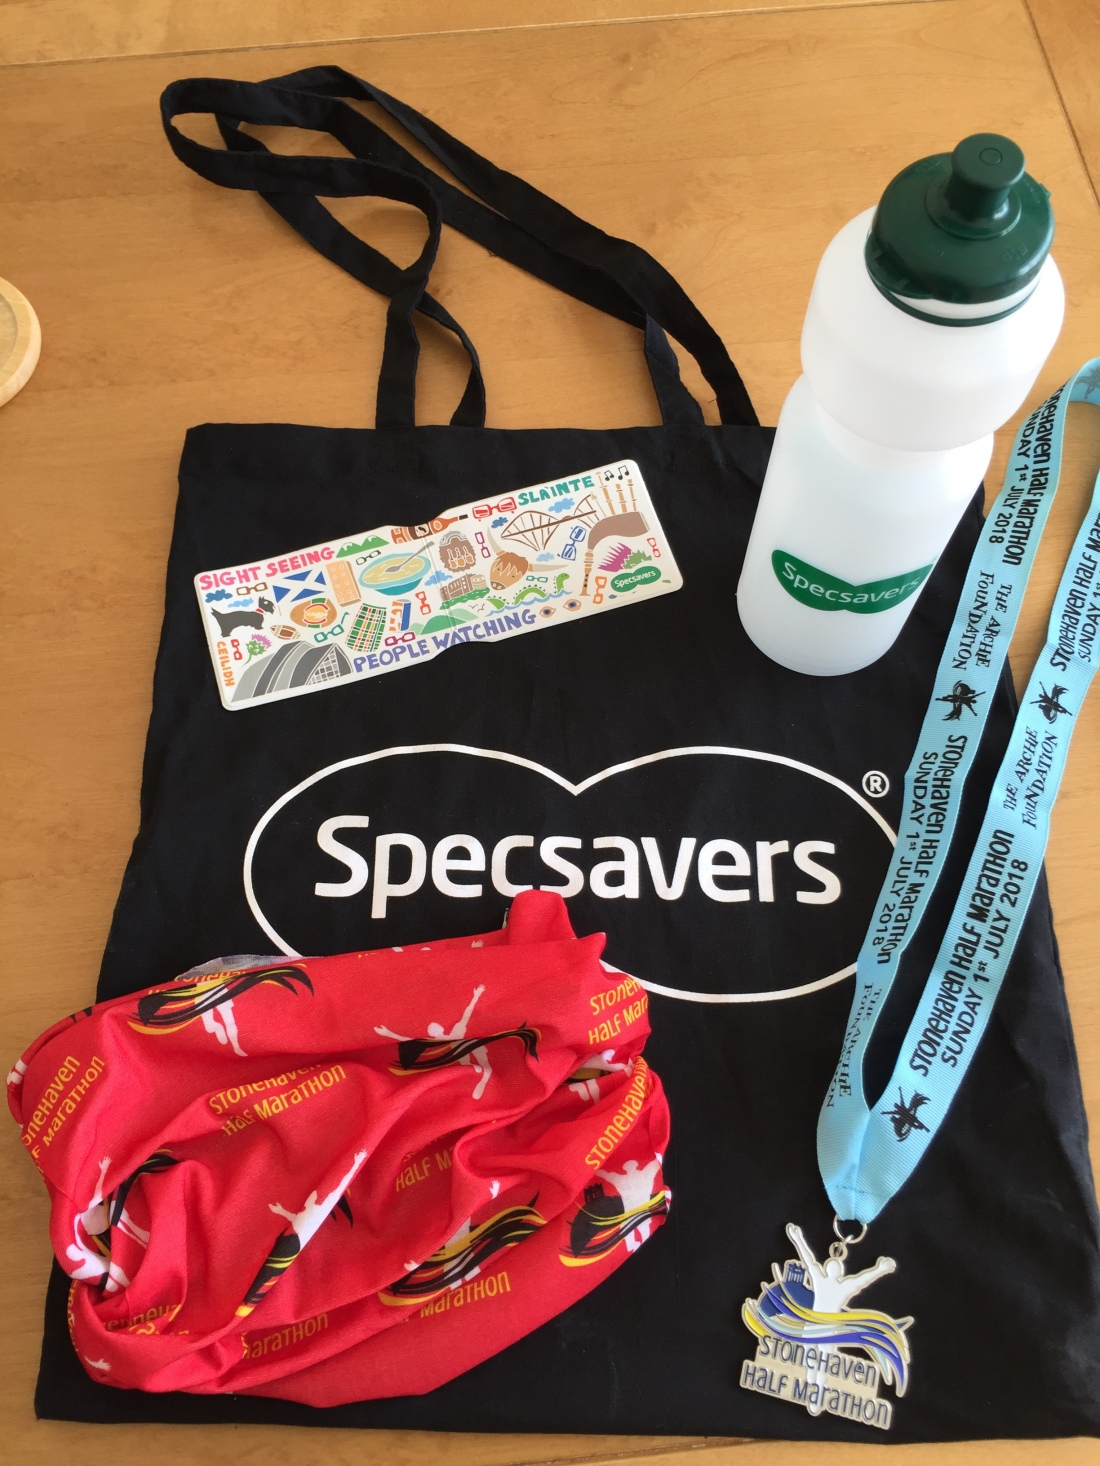 Lovely medal & you can never have too many buffs! Thanks also to Specsavers for their goodies.